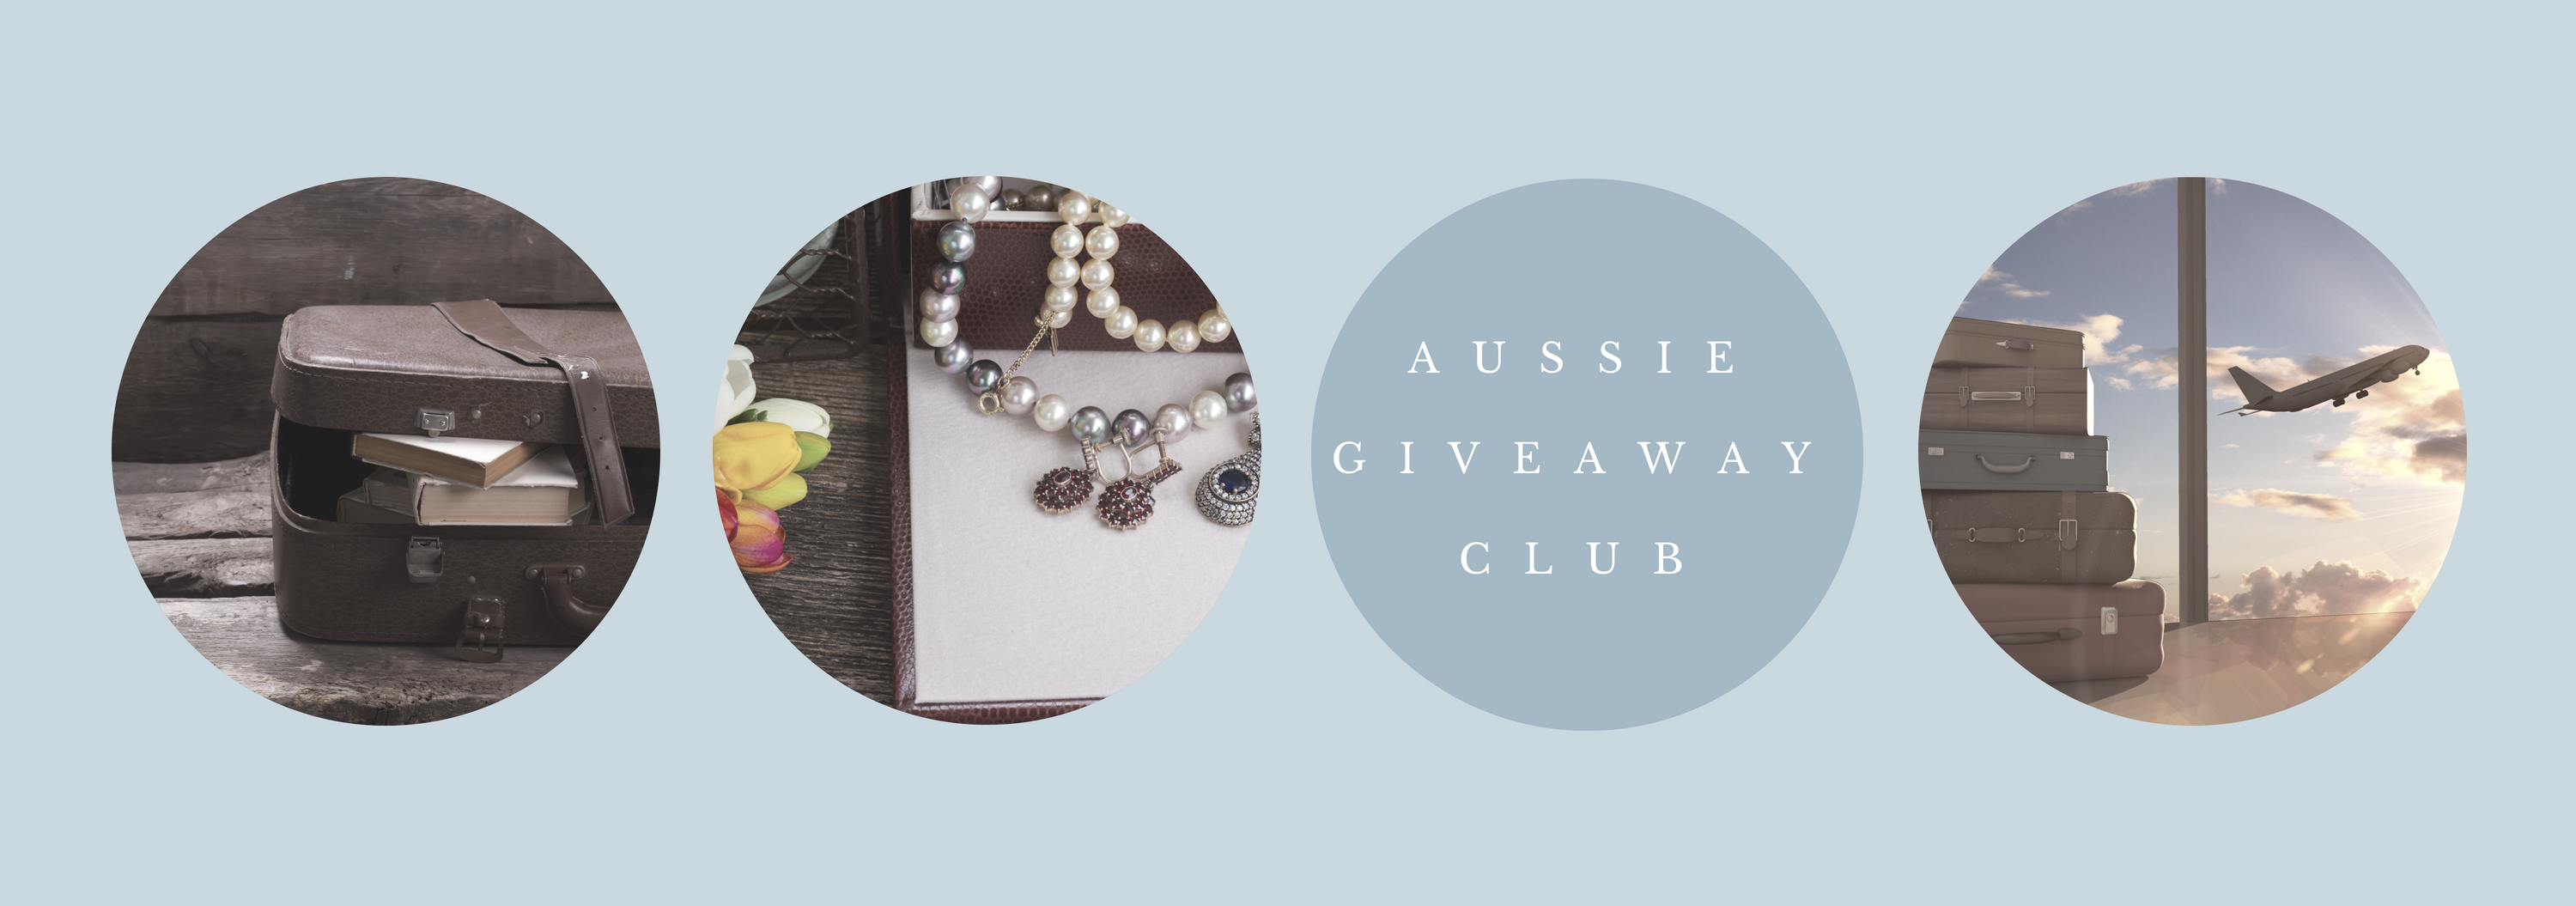 AUSSIE GIVEAWAY CLUB APRIL 2019 – Agent Mystery Case